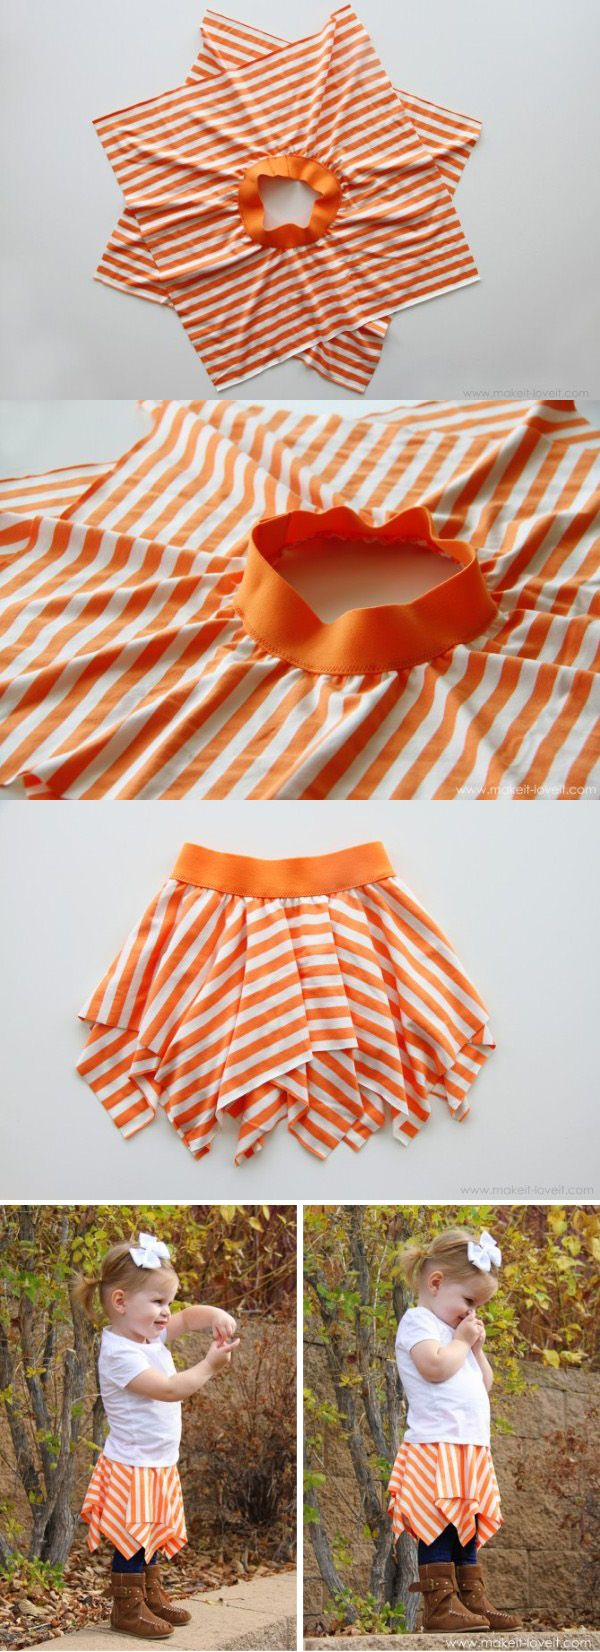 DIY Skirt Tutorial from makeit-loveit.com ...looks so easy!!